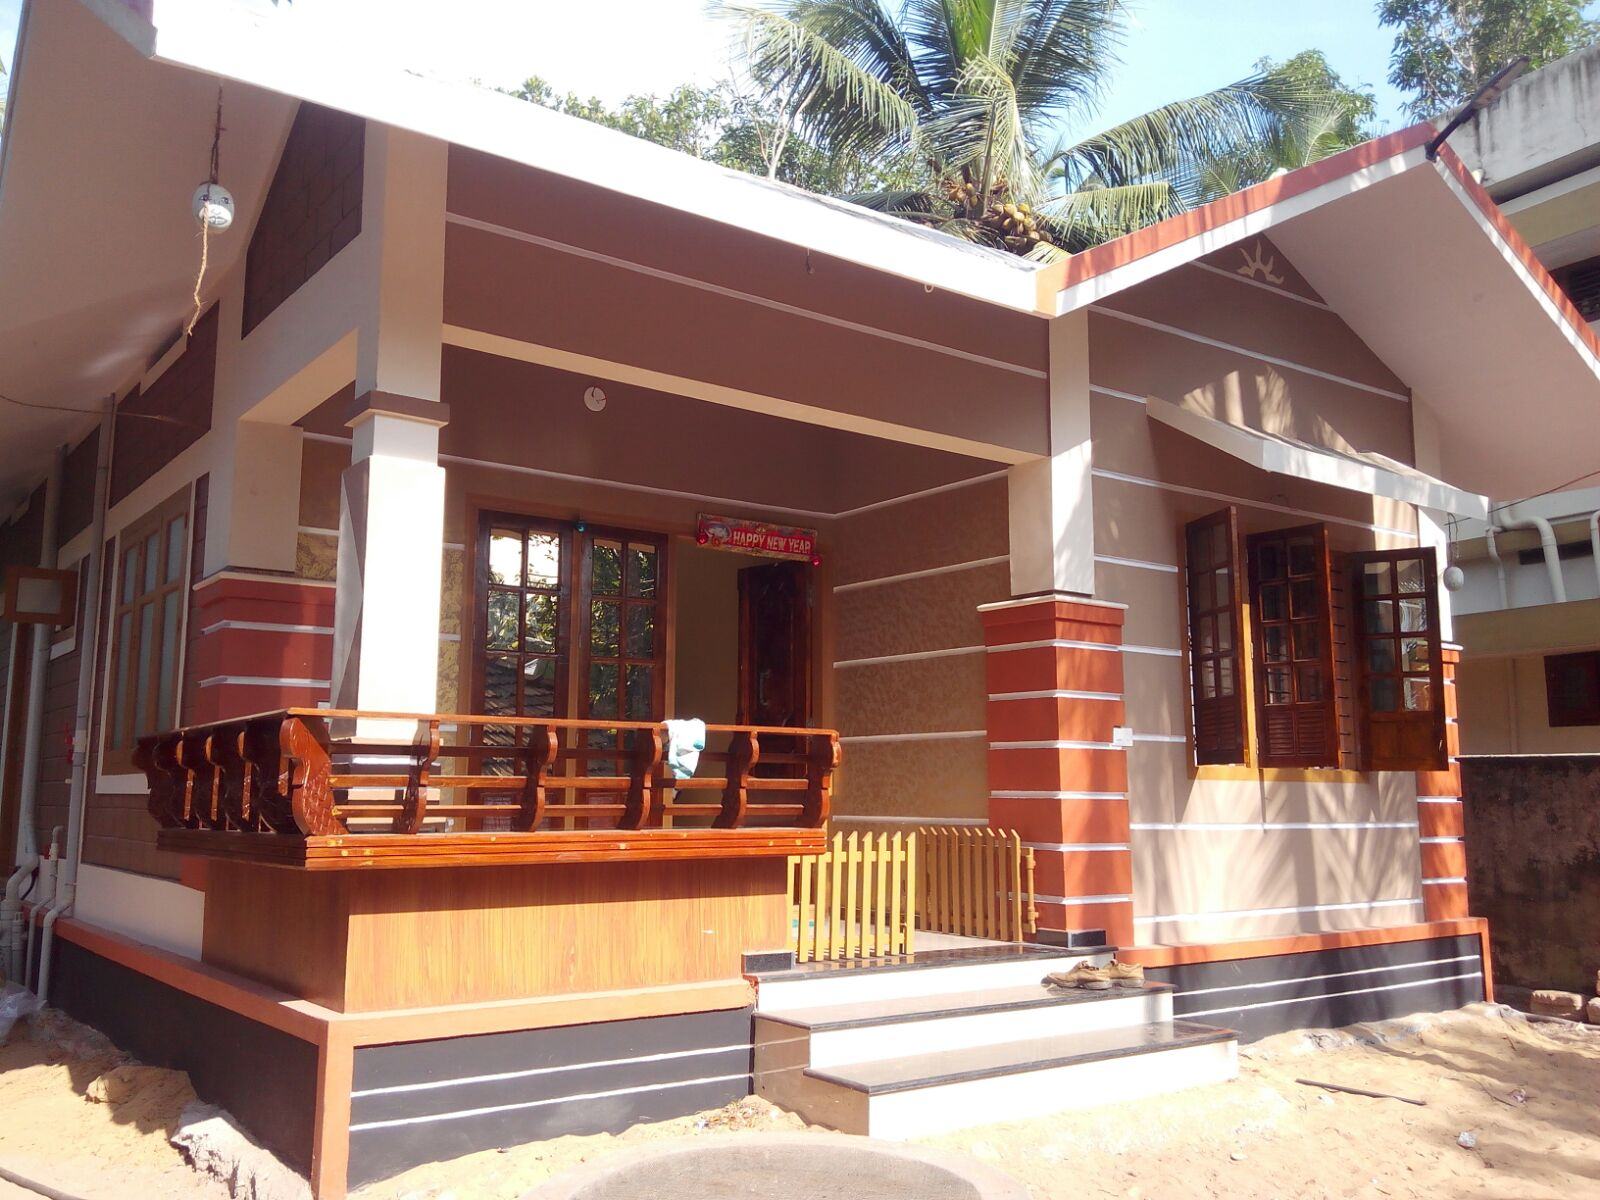 720 square feet 2 bedroom low budget home design at for Lowest cost per square foot build house